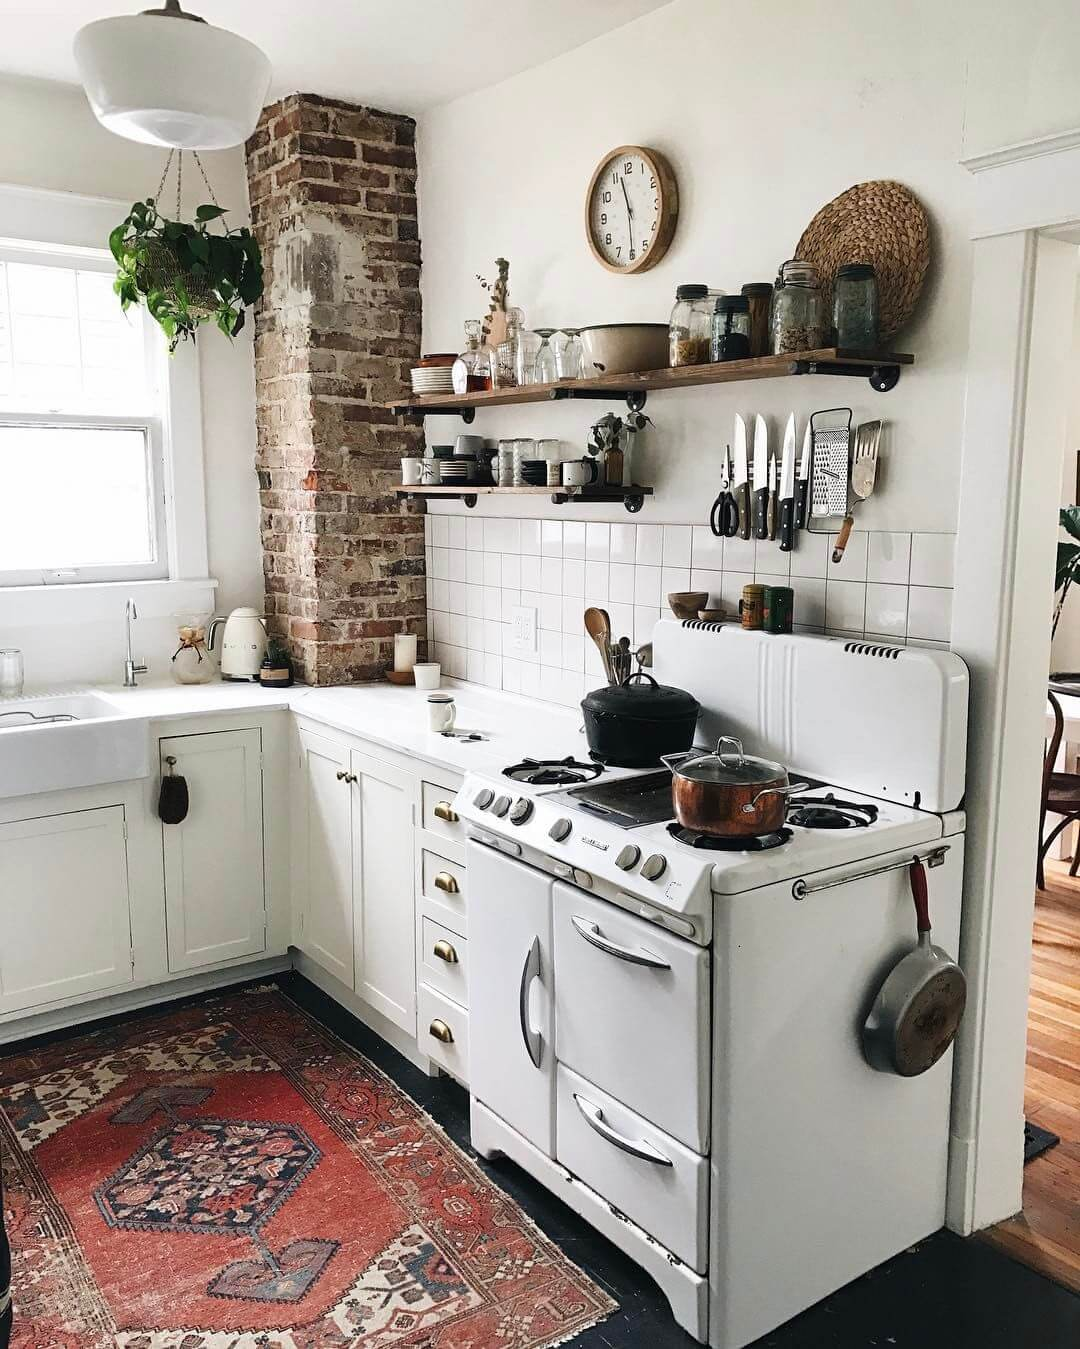 decorating ideas kitchens best brand name kitchen appliances 23 cottage and designs for 2019 eclectic design